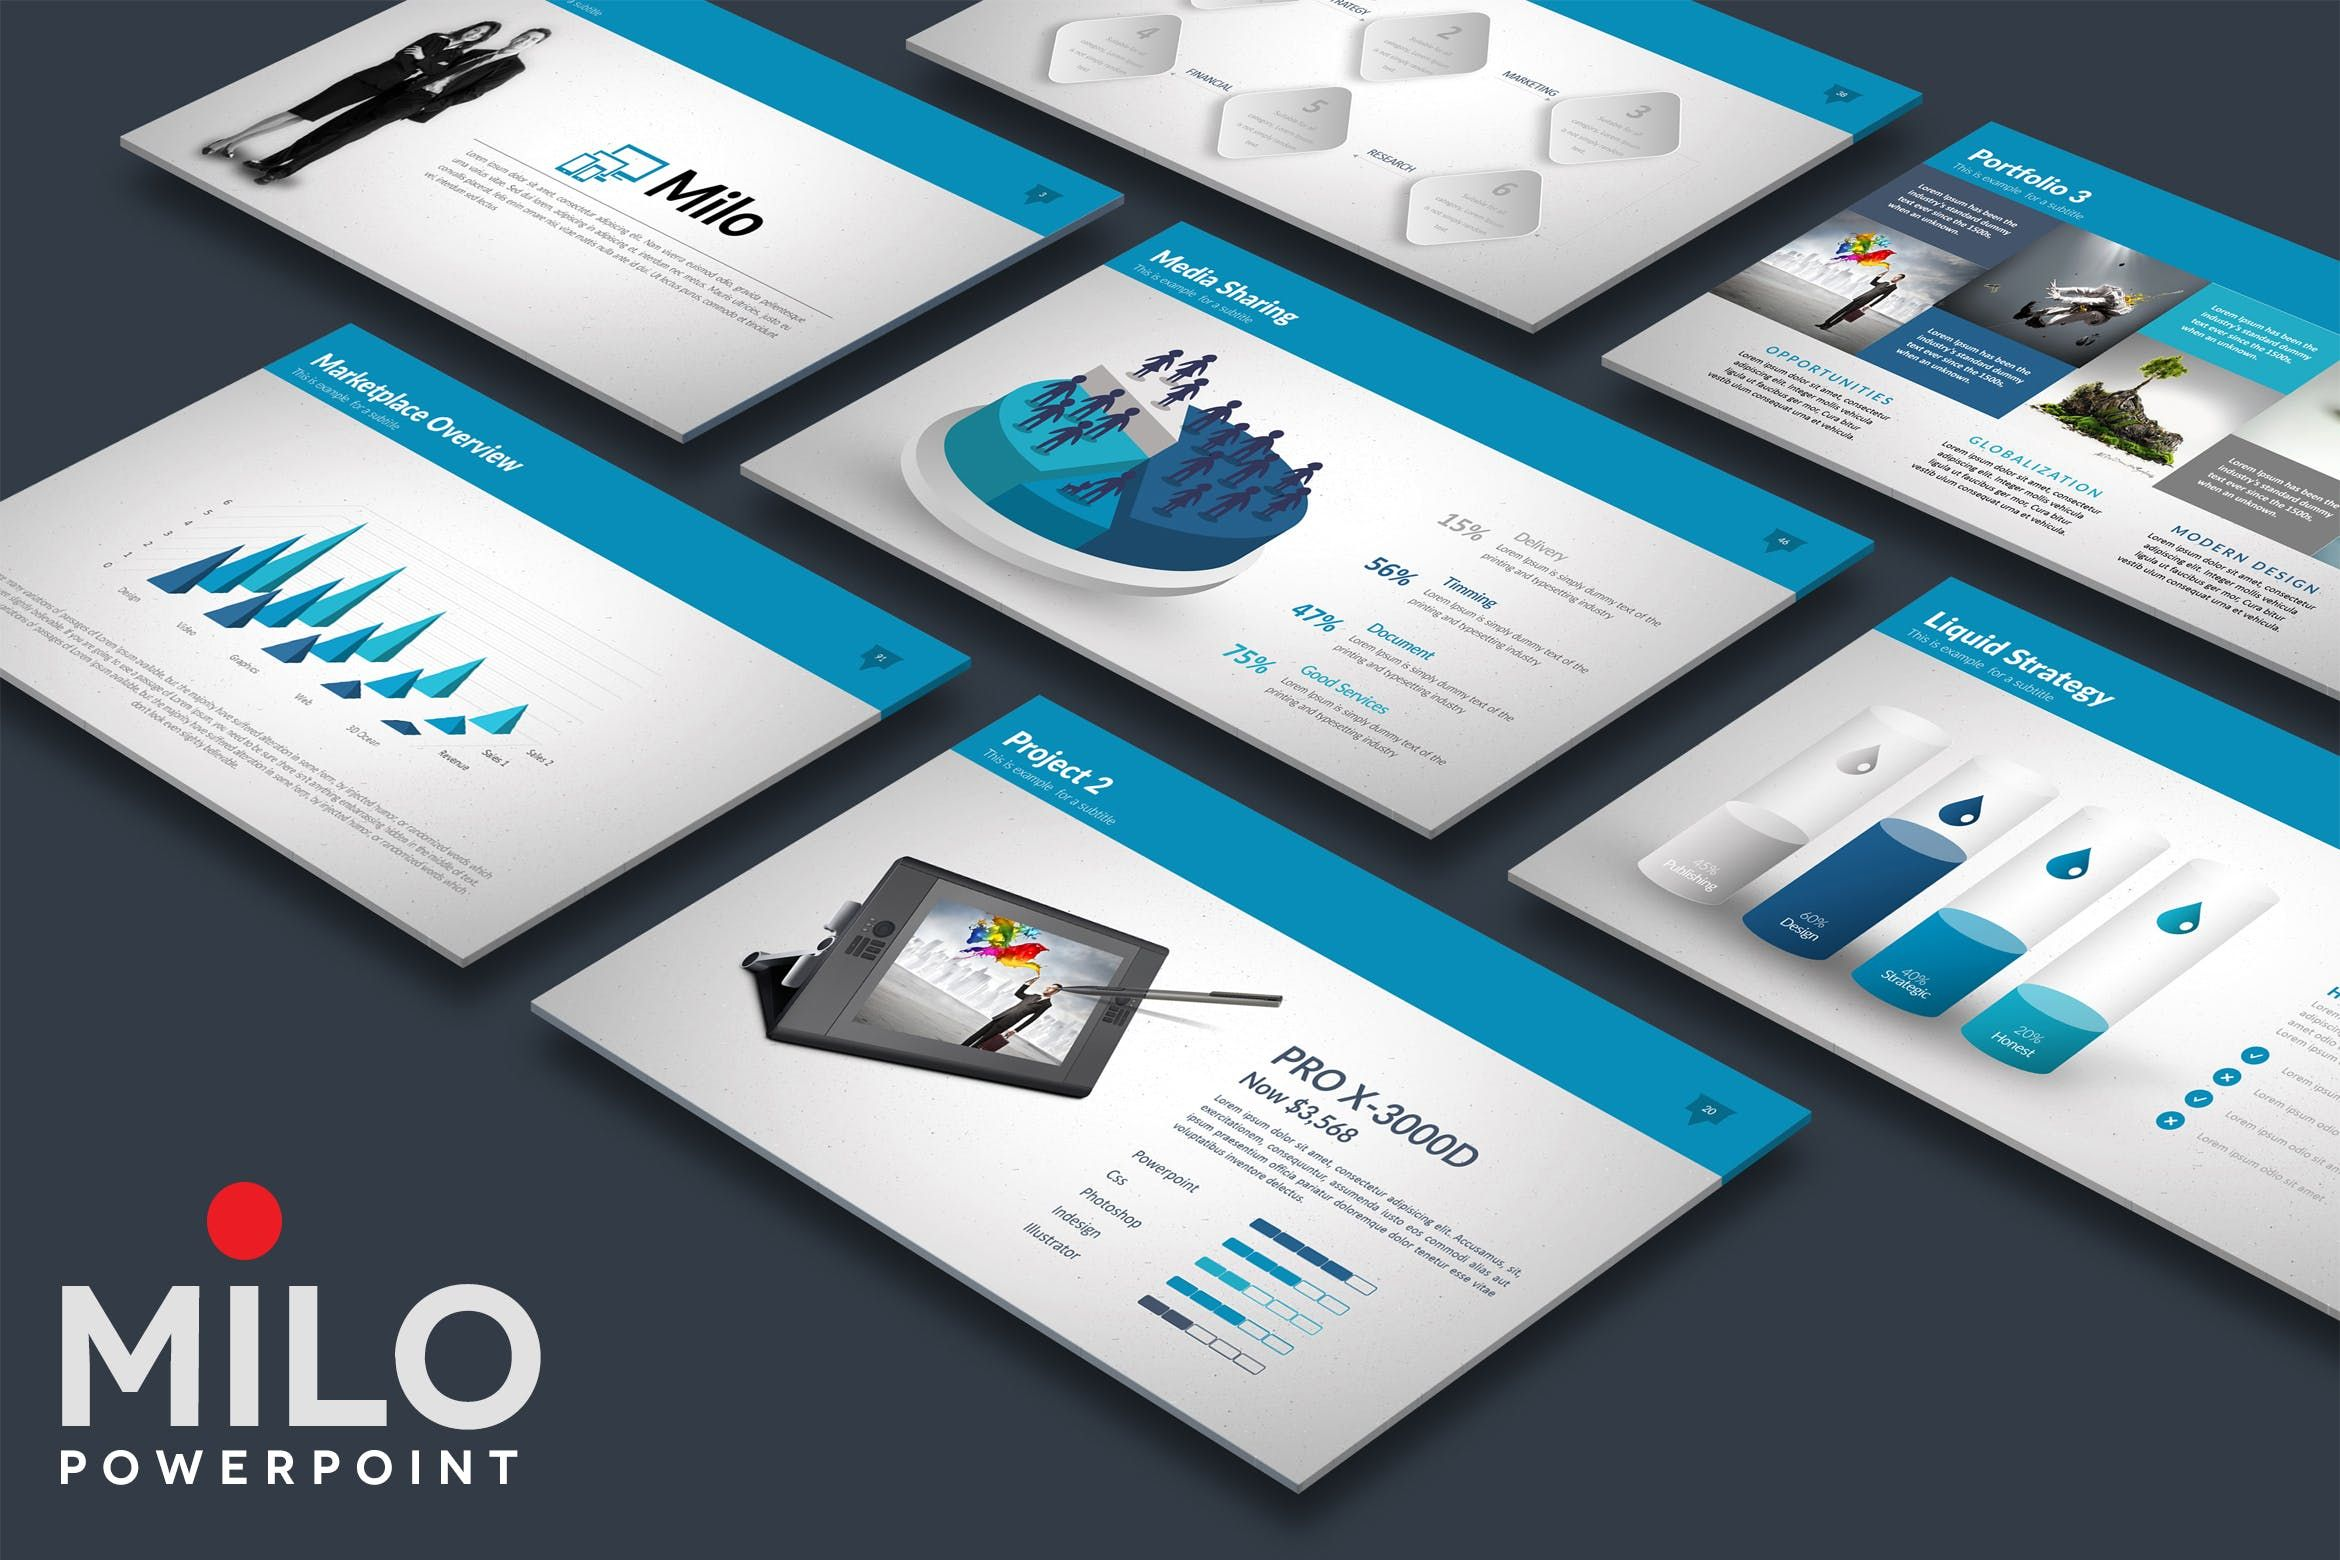 This Is 1 Of 1000s Of Beautiful Presentation Templates Ready To Use And Waiting For You To Download Now At Envato Elements Power Points